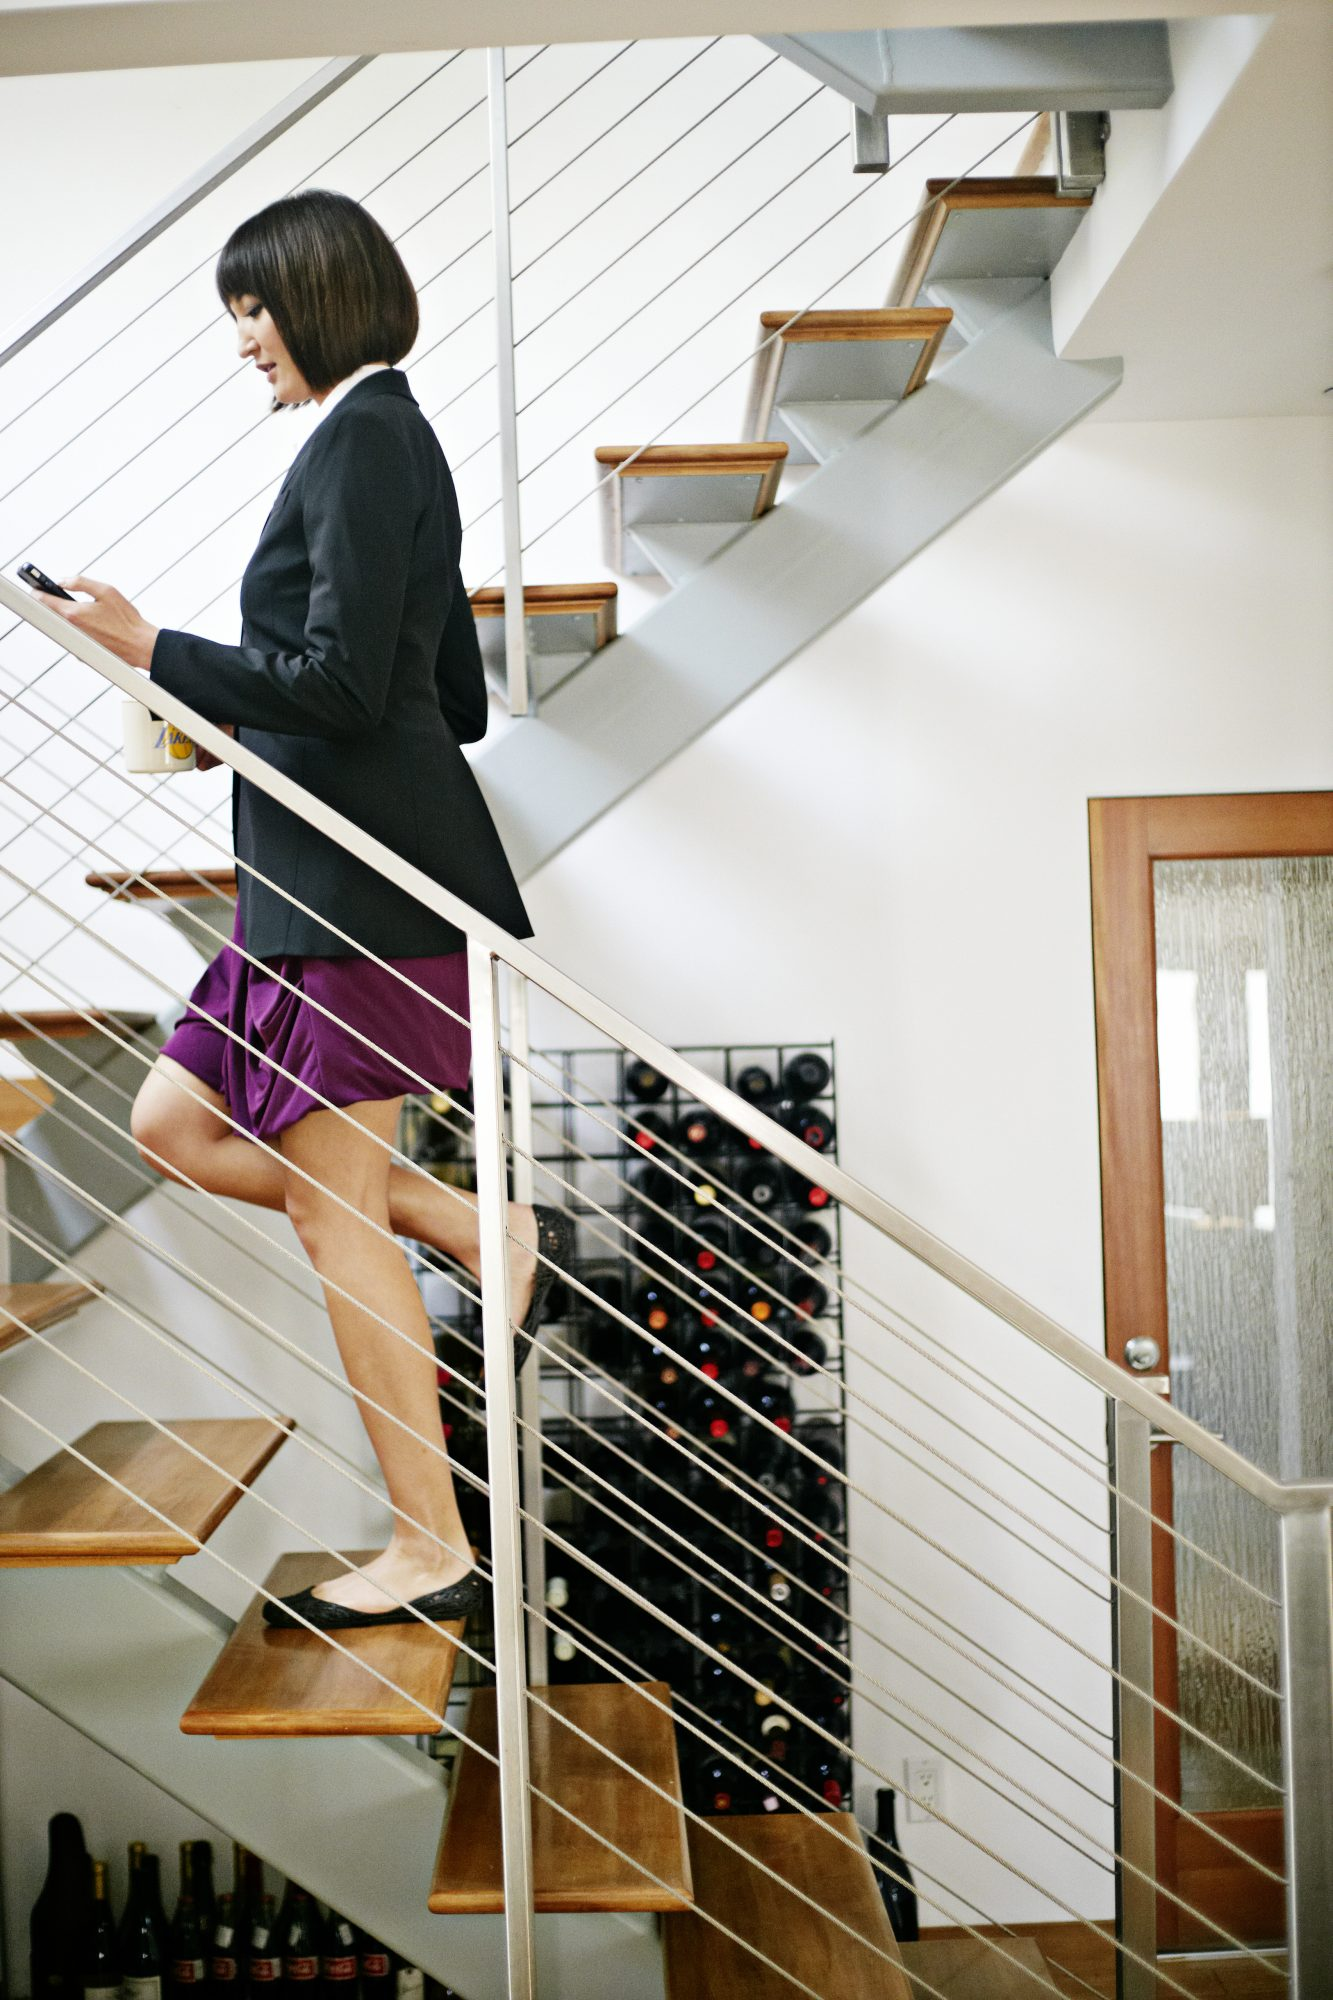 Woman Climbing Stairs Texting